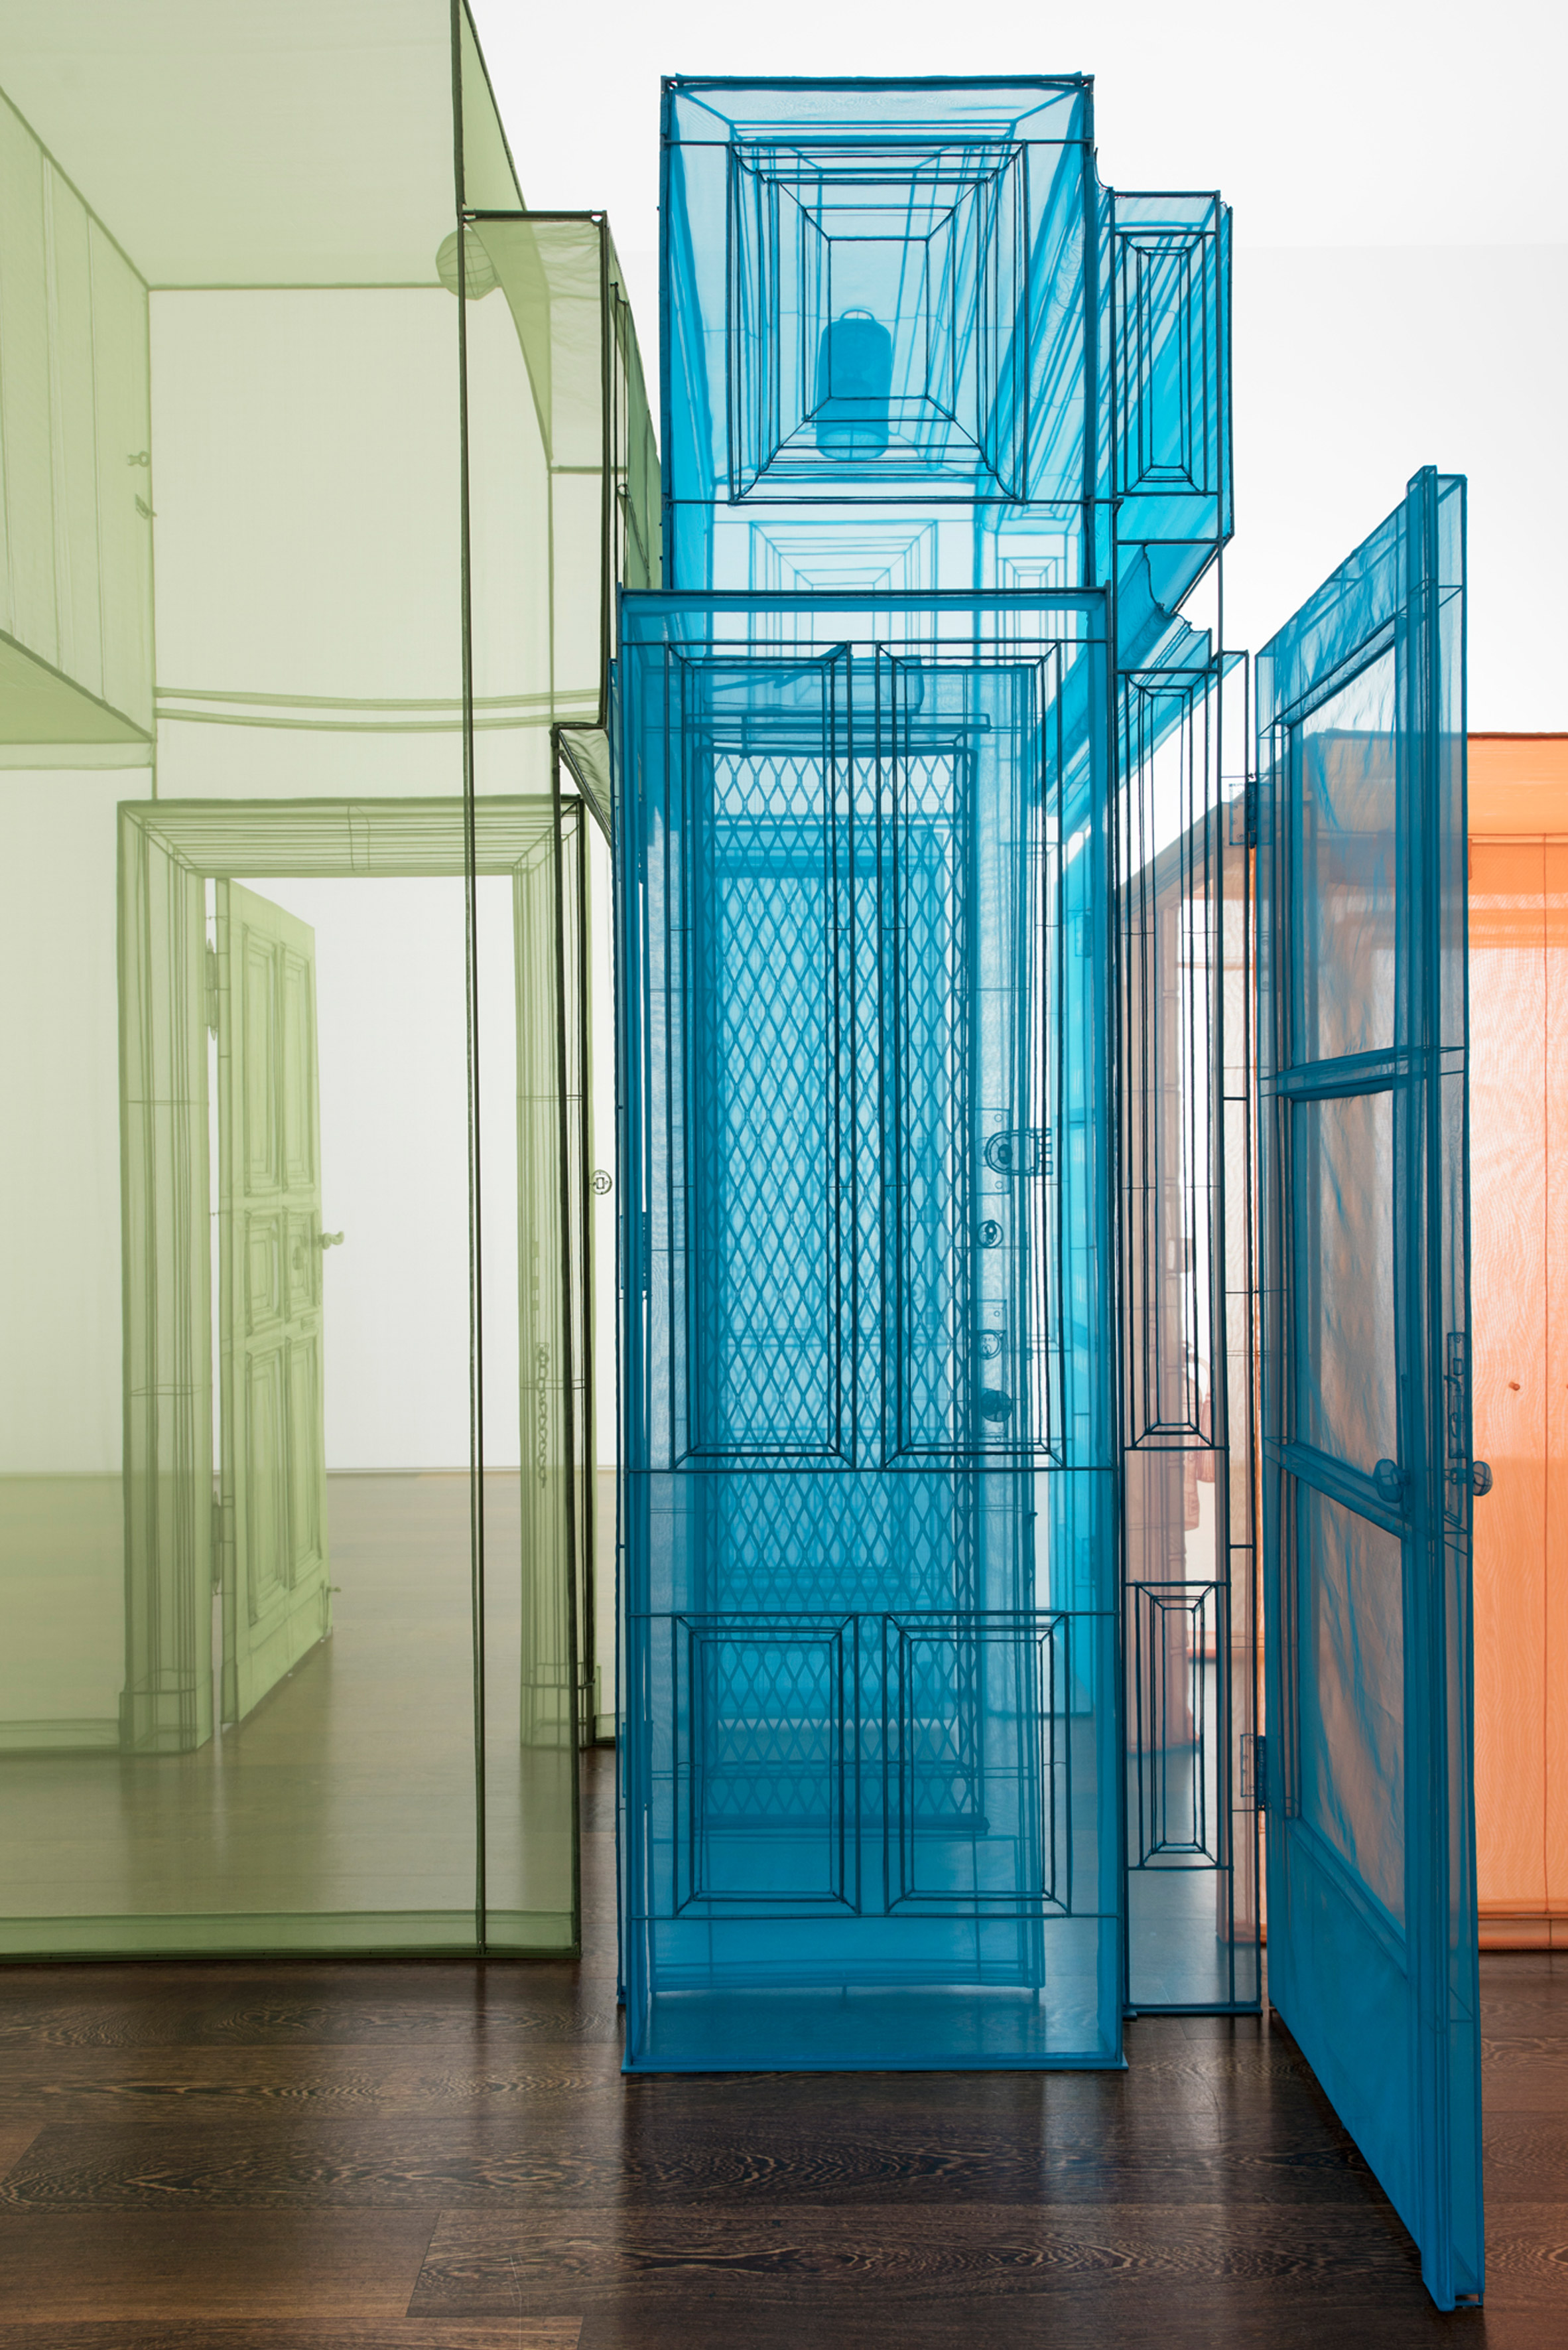 Do Ho Suh creates colourful structures to represent his experience of migration